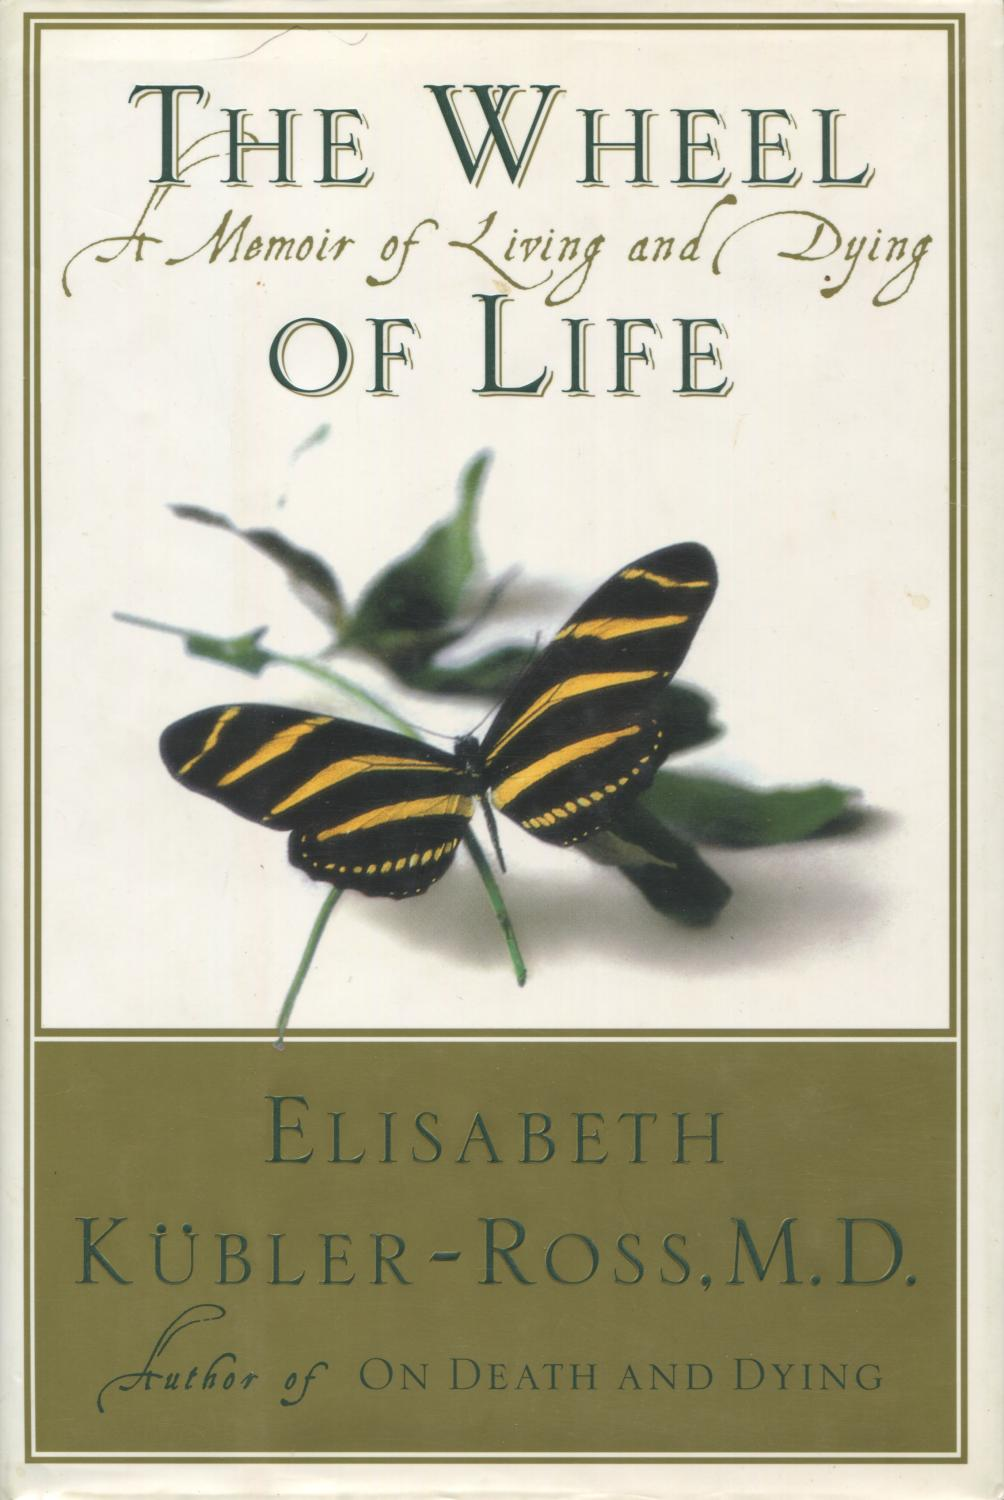 PRELOVED The Wheel of Life: A Memoir of Living and Dying - Elisabeth Kubler-Ross